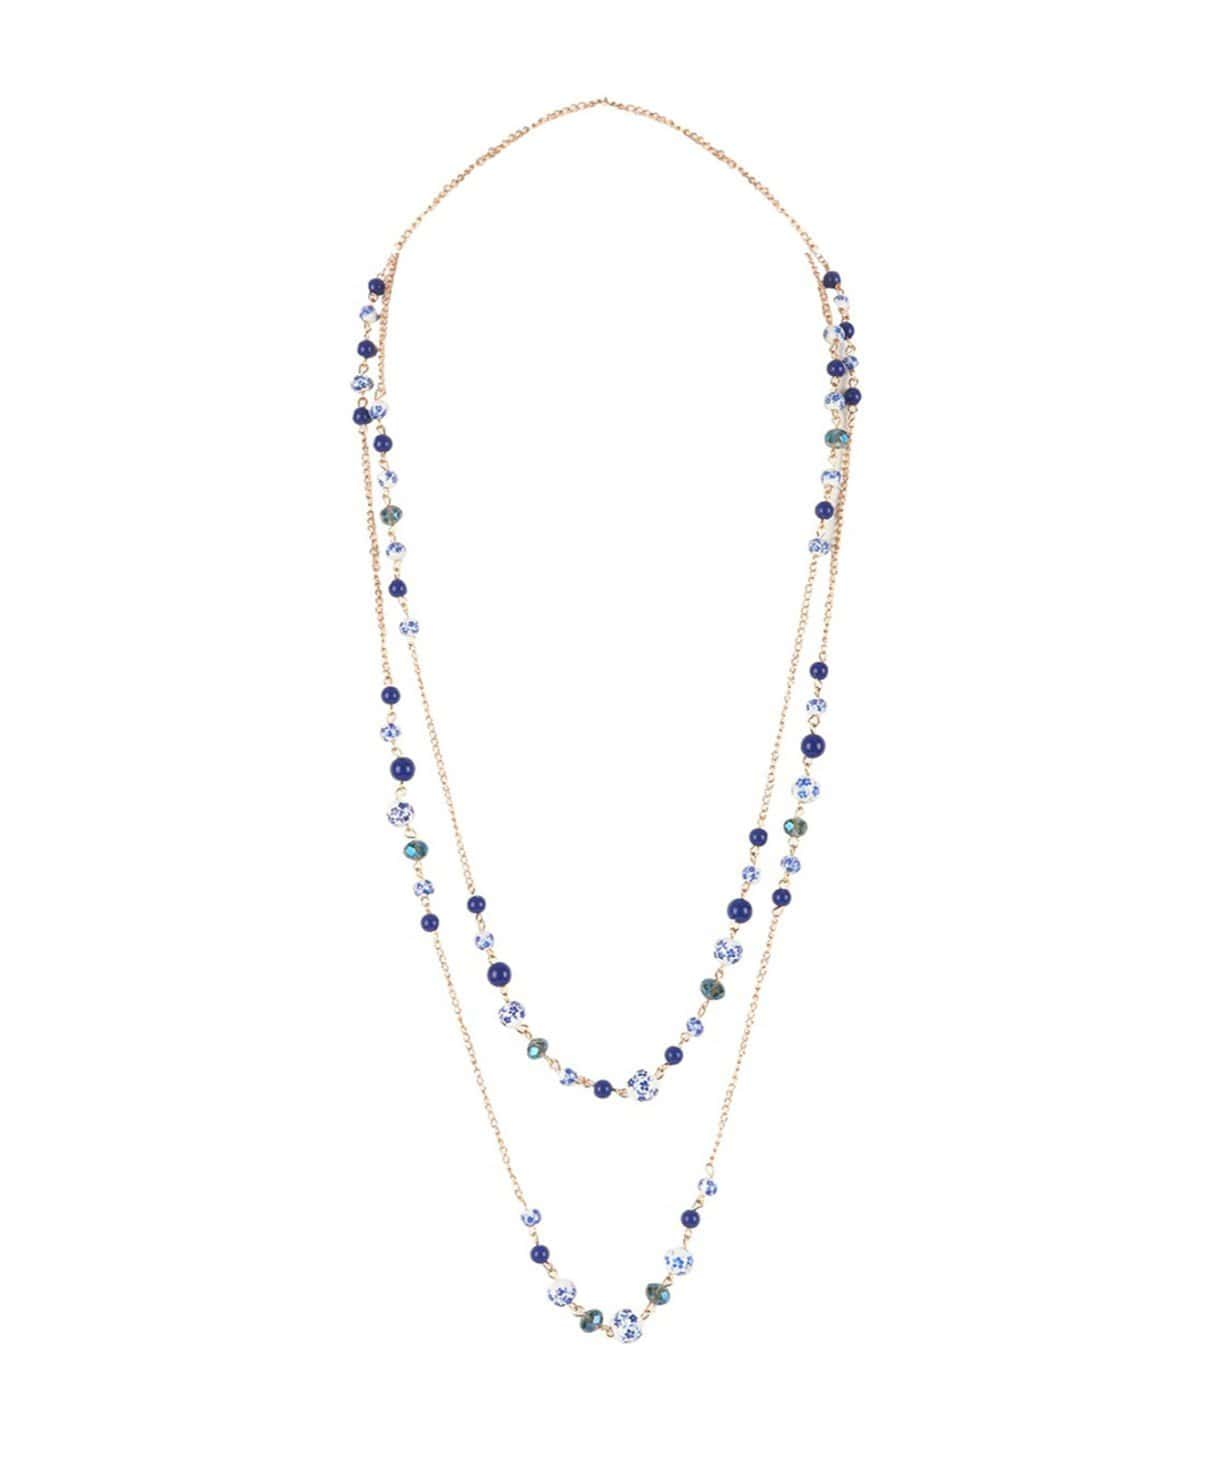 Porcelain Bead Necklace - Uptownie